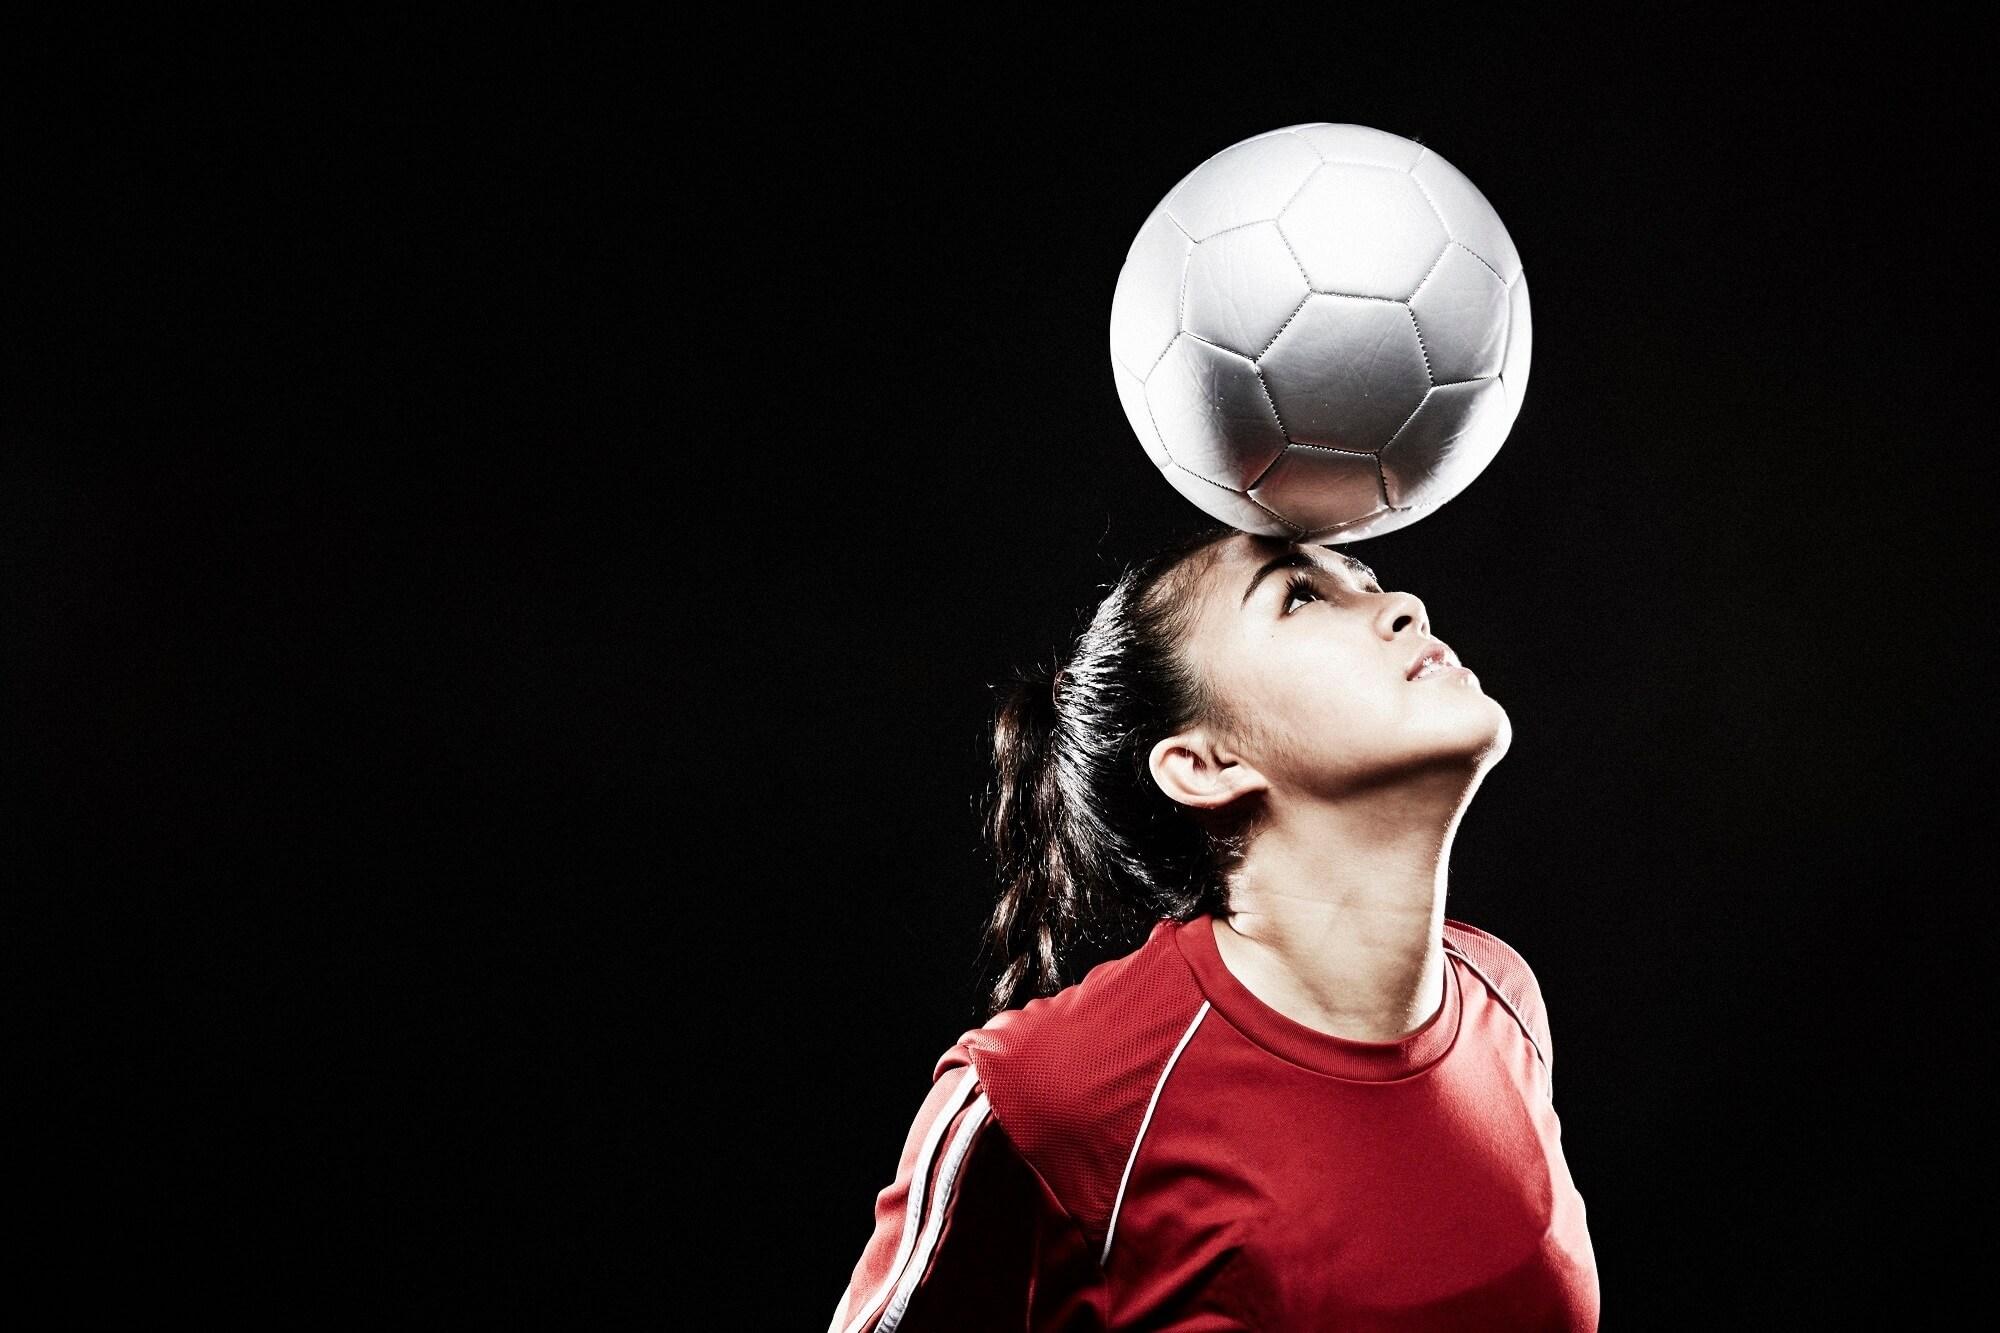 A jugular vein compression collar can prevent white matter alterations associated with head impact exposure among female high school soccer players.